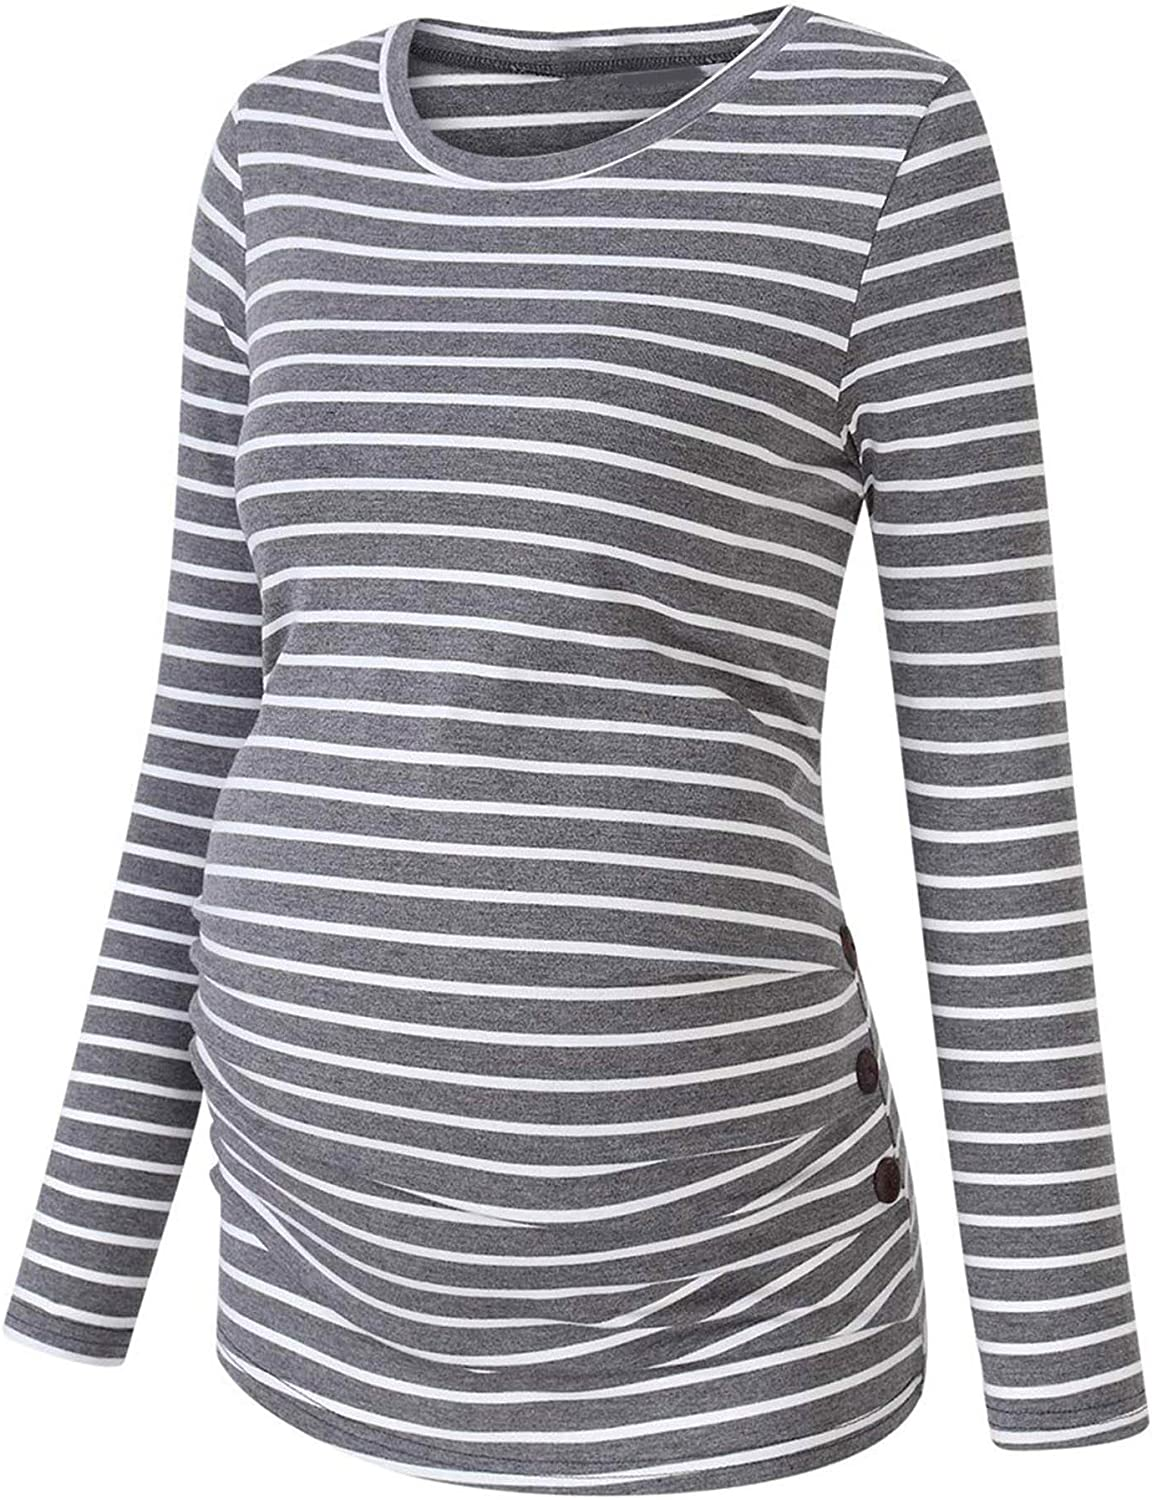 QinCiao Women's Maternity Some reservation T-Shirt Tops Striped Long Side Sleeve 5% OFF